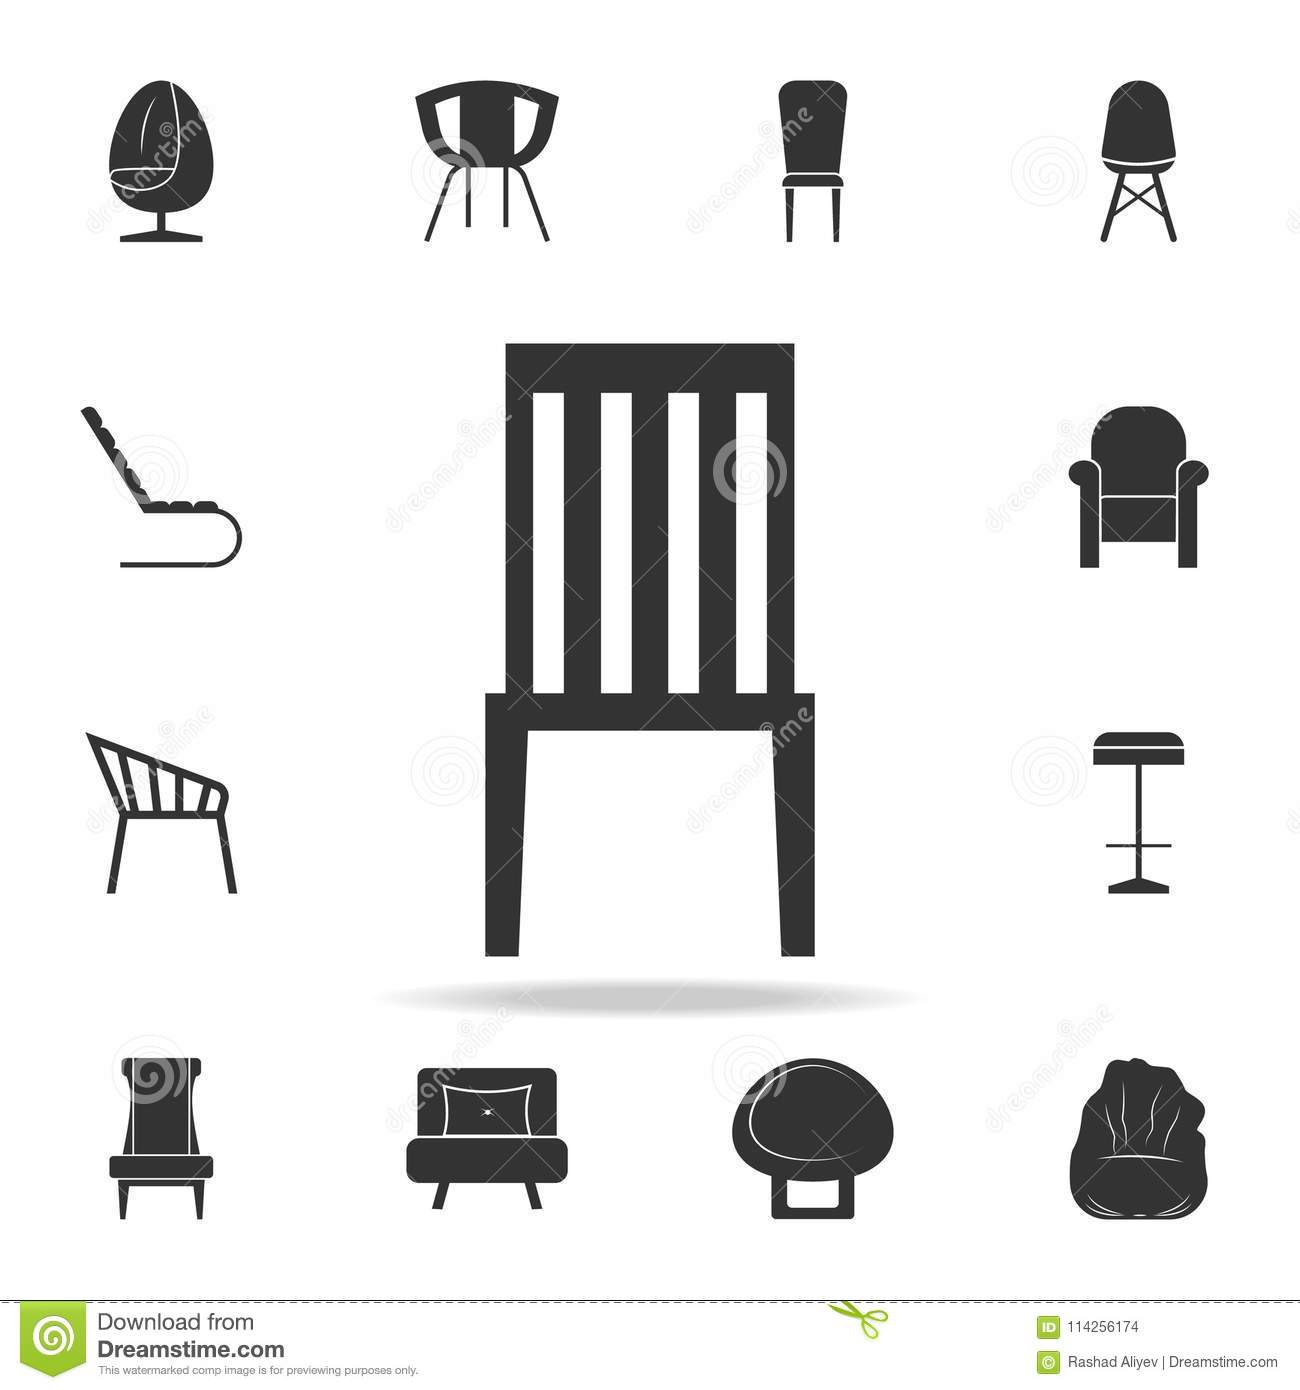 chair design icons stackable chairs for less icon detailed set of furniture premium quality graphic one the collection websites web mobile app on white